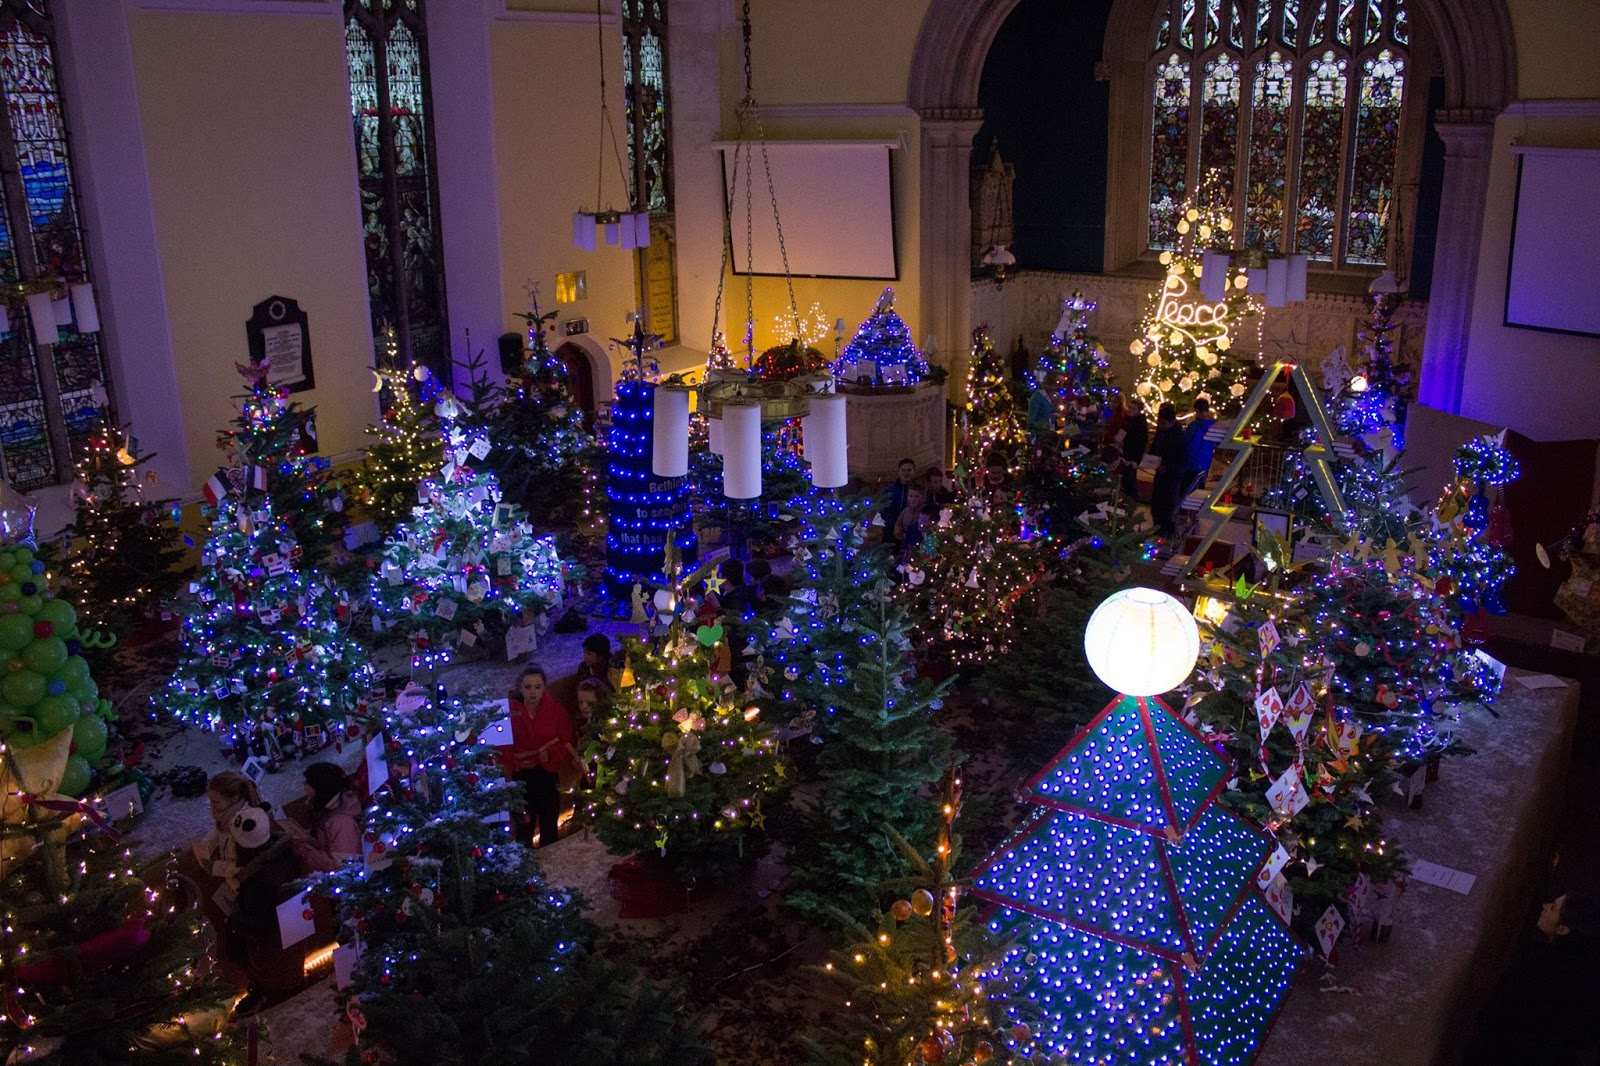 Shankill Online: The Christmas Story In Trees At St. James